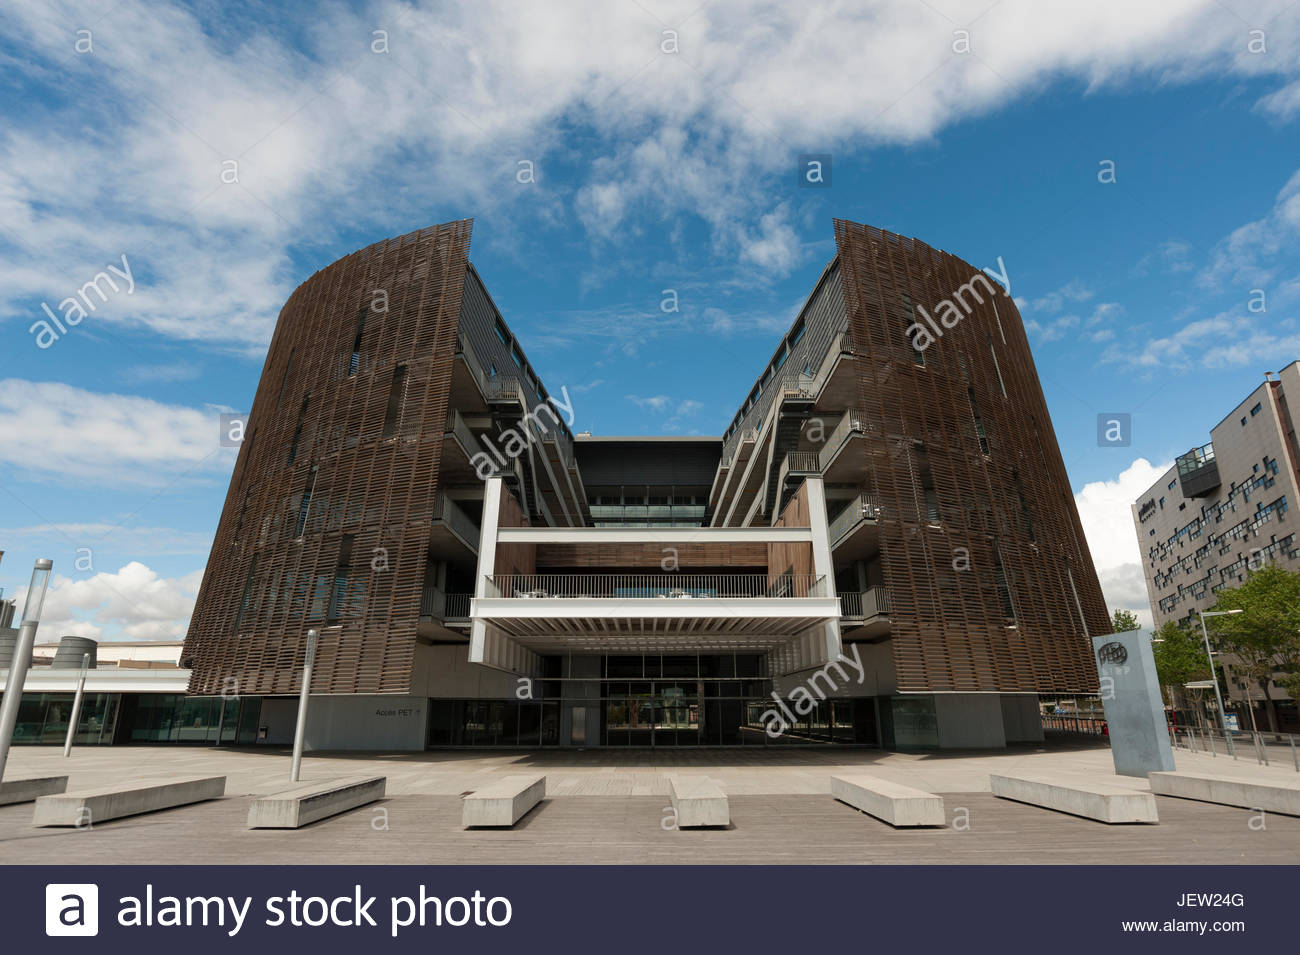 The Biomedical Research Park building. - Stock Image